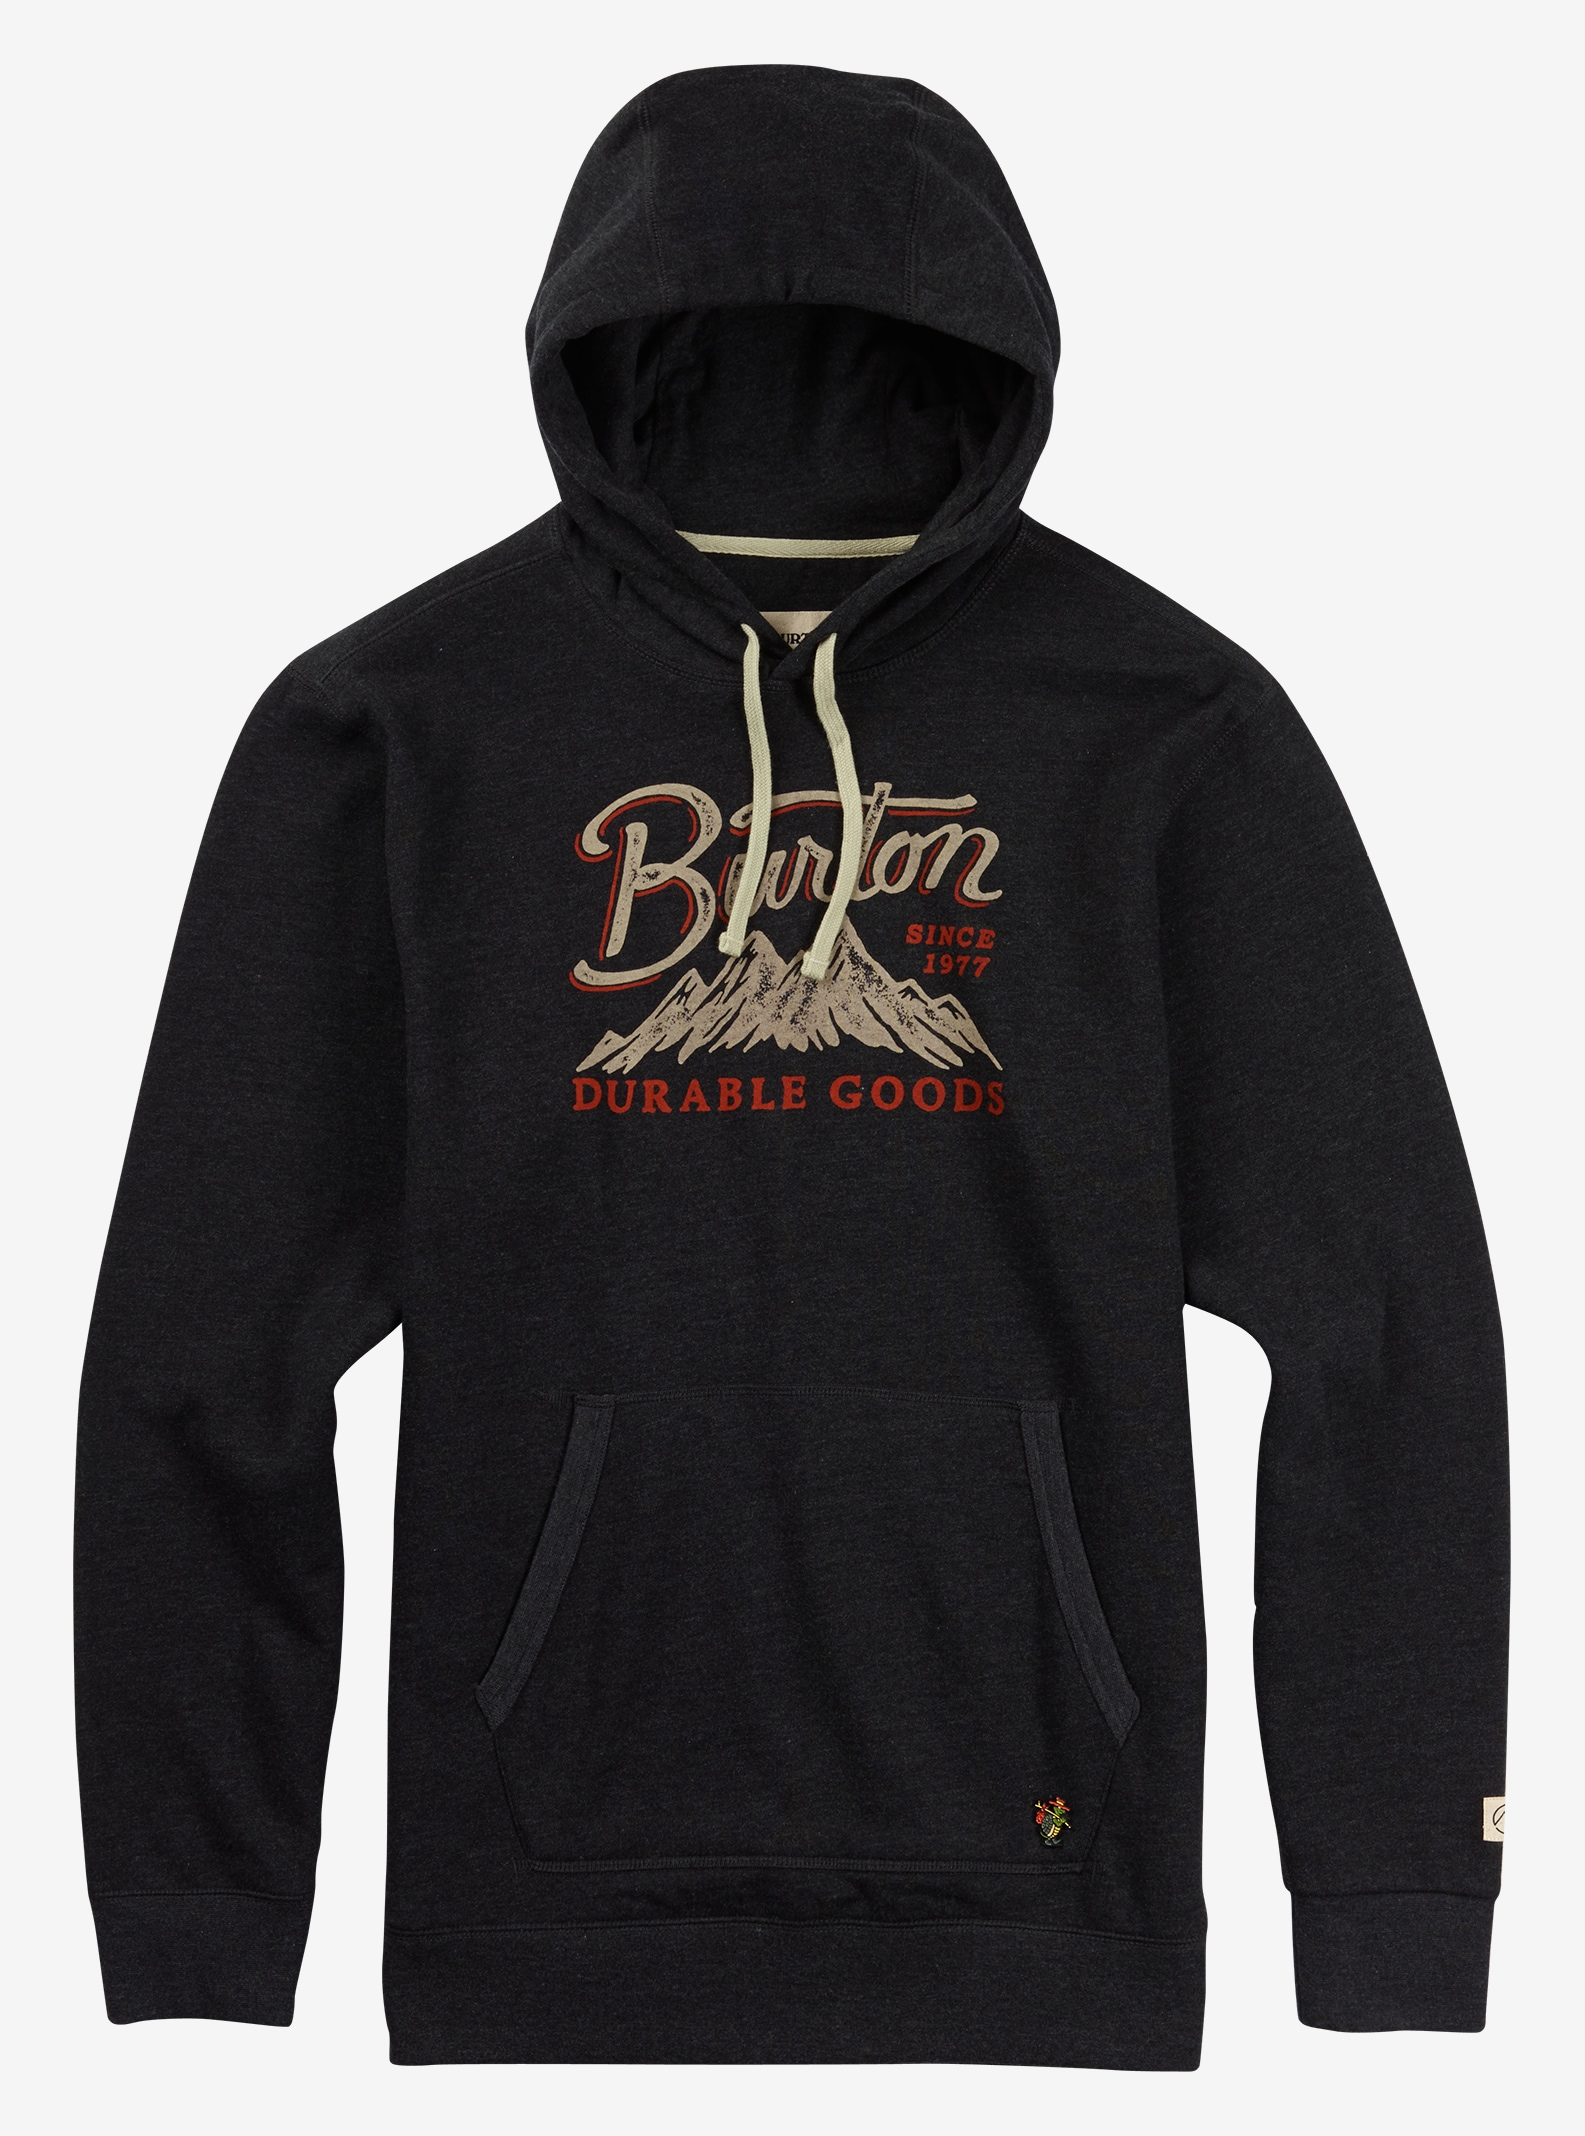 Burton Front Range Pullover Hoodie shown in True Black Heather